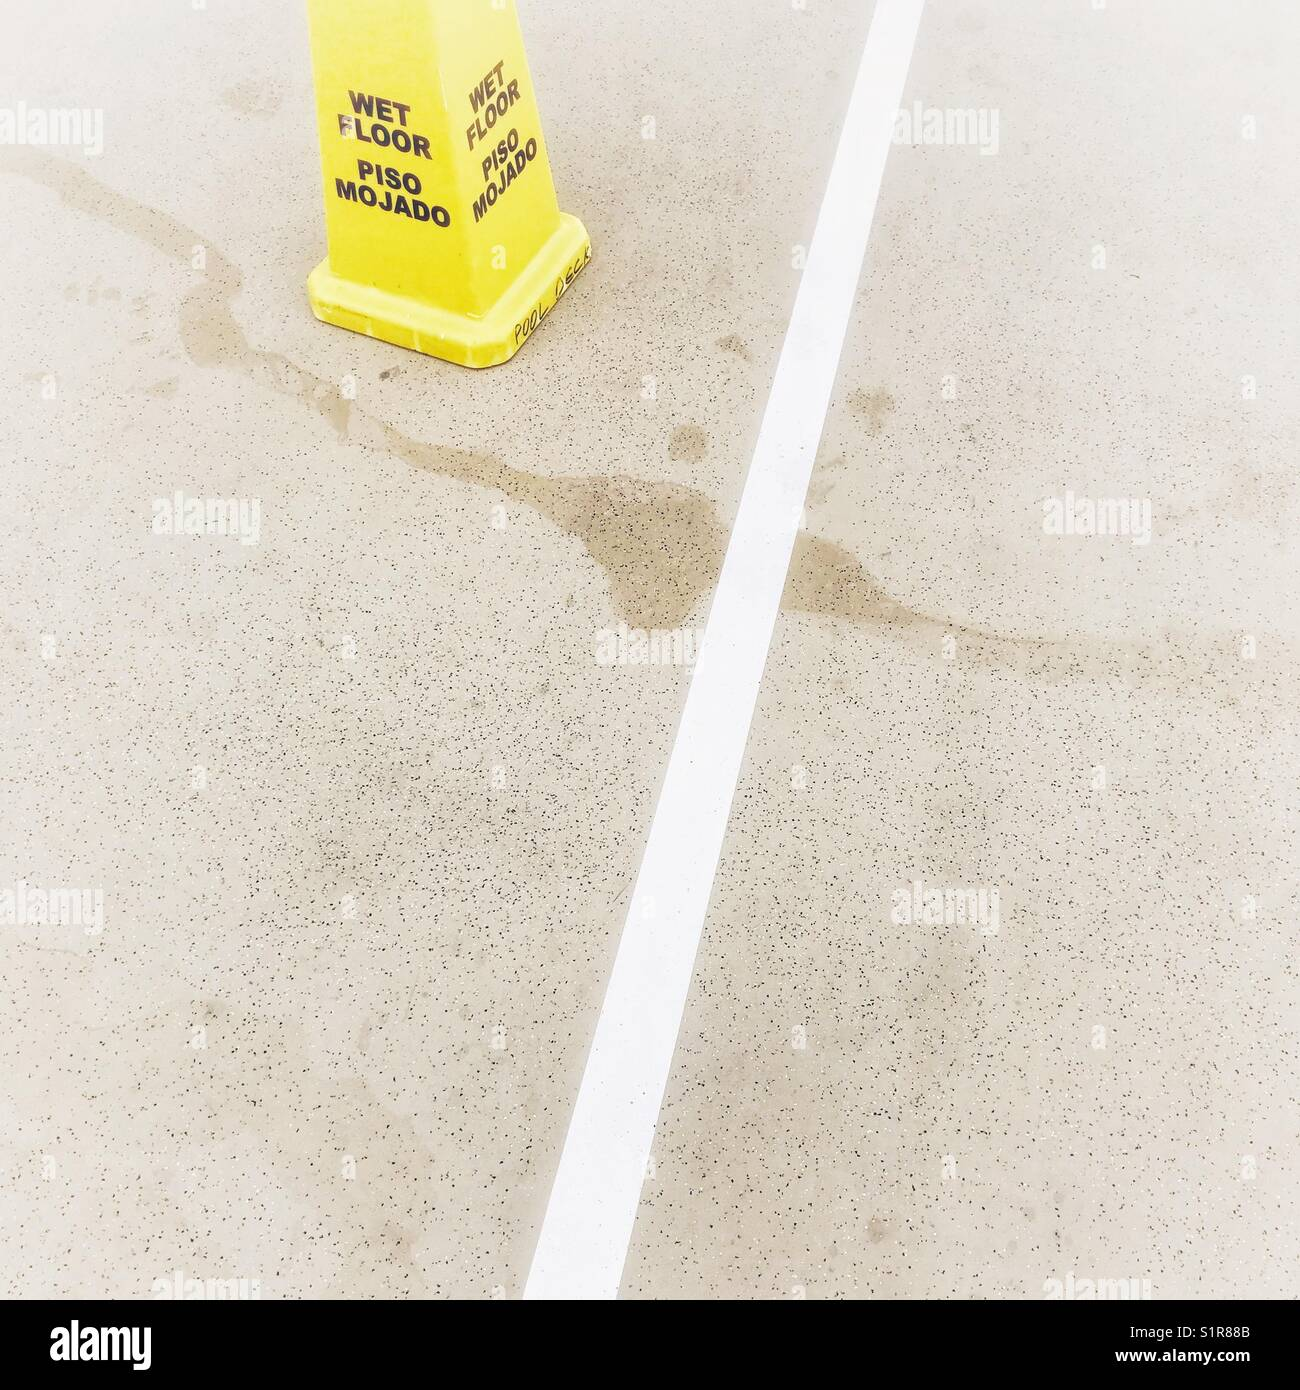 Wet Floor Caution Stockfotos & Wet Floor Caution Bilder